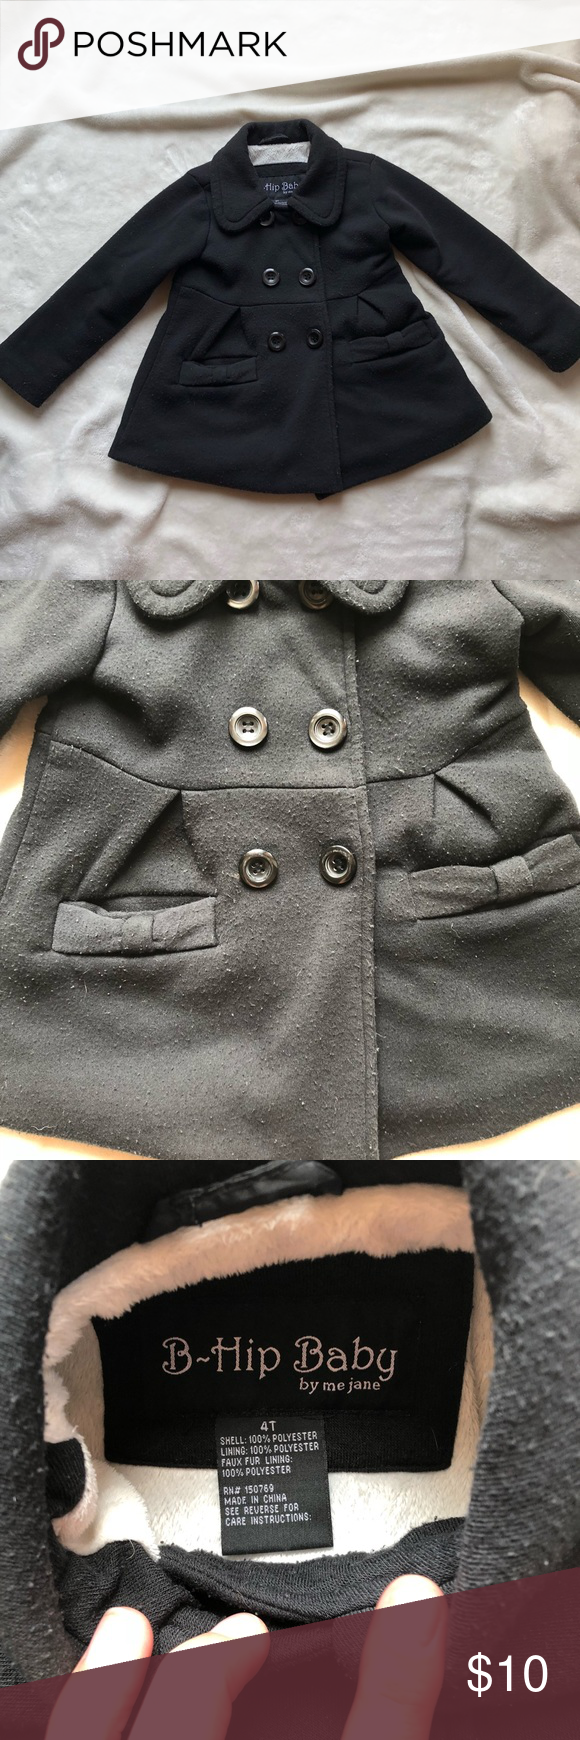 441758143 Girls 4T Pea Coat Used condition